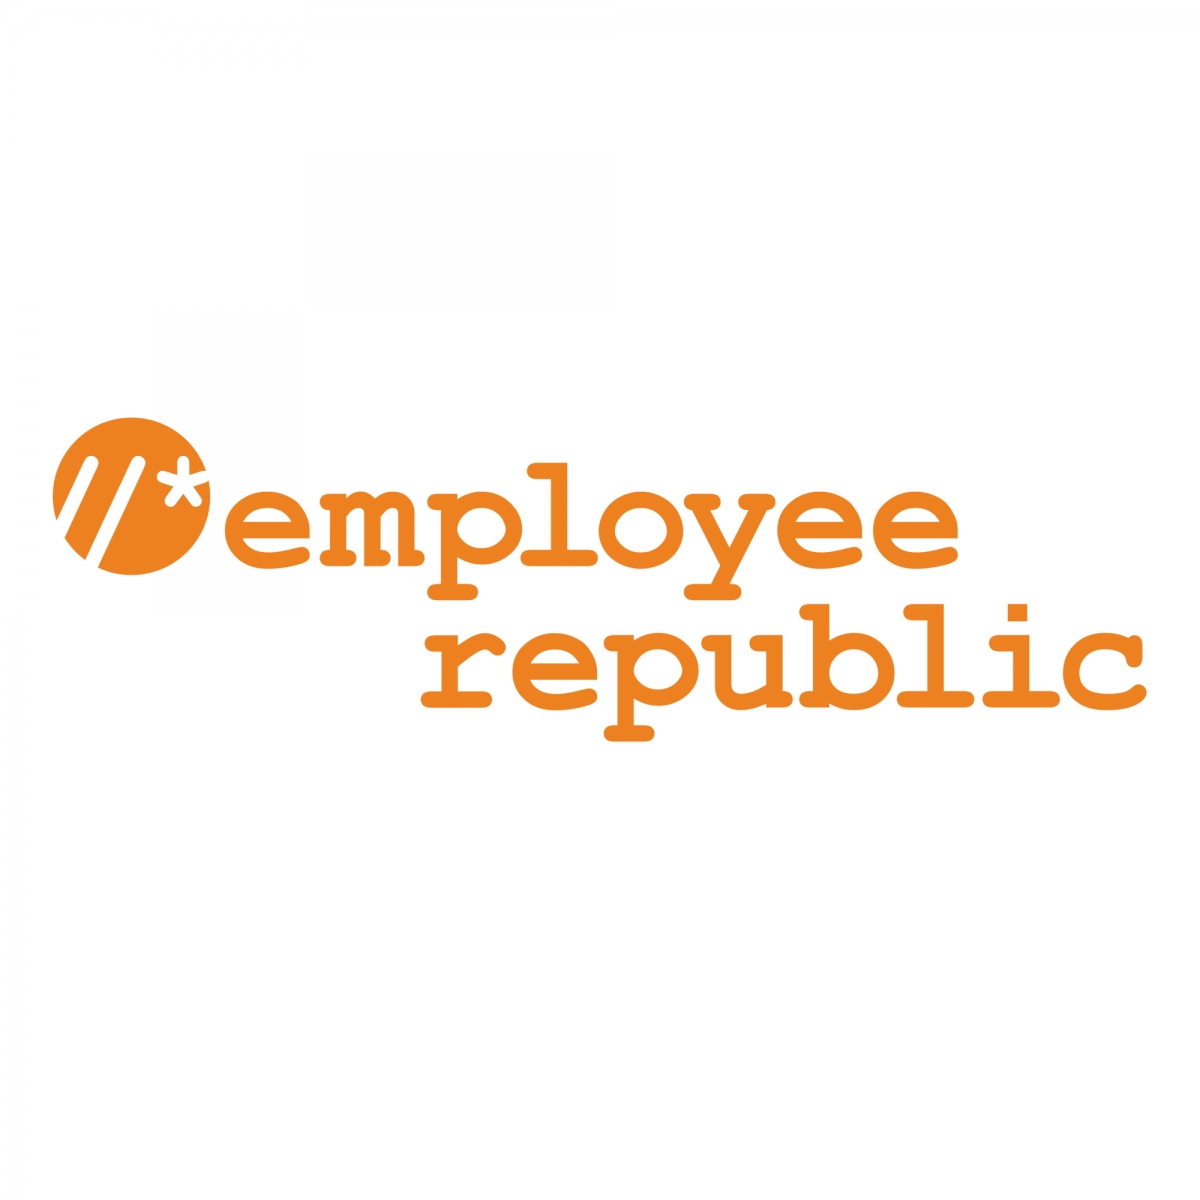 Employee Republic